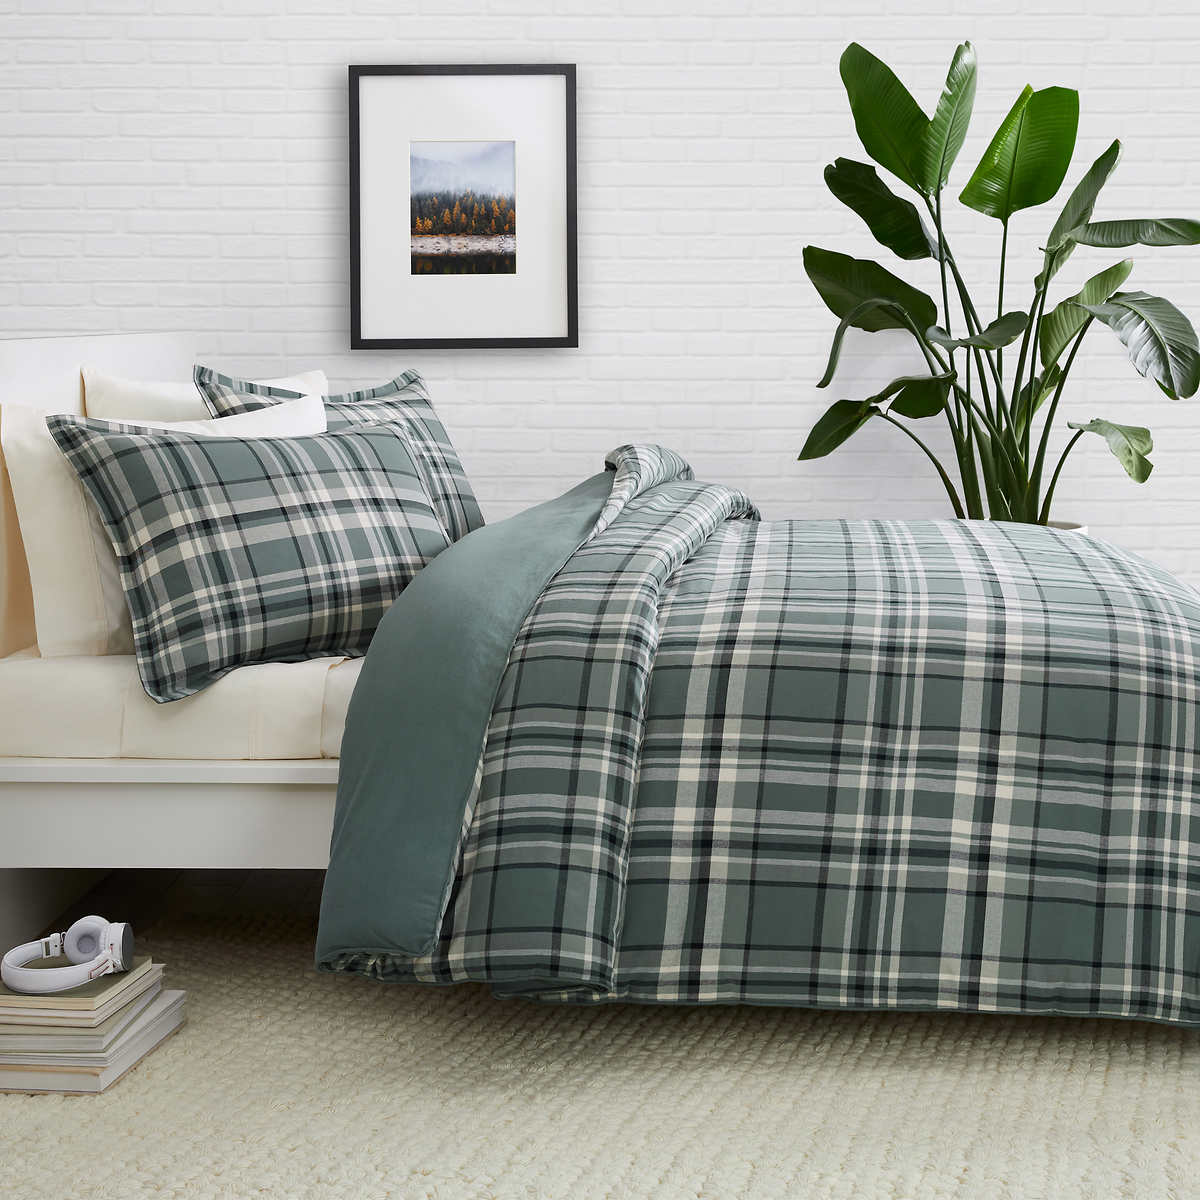 White Welhome Aidan Washed Quilt Full //Queen